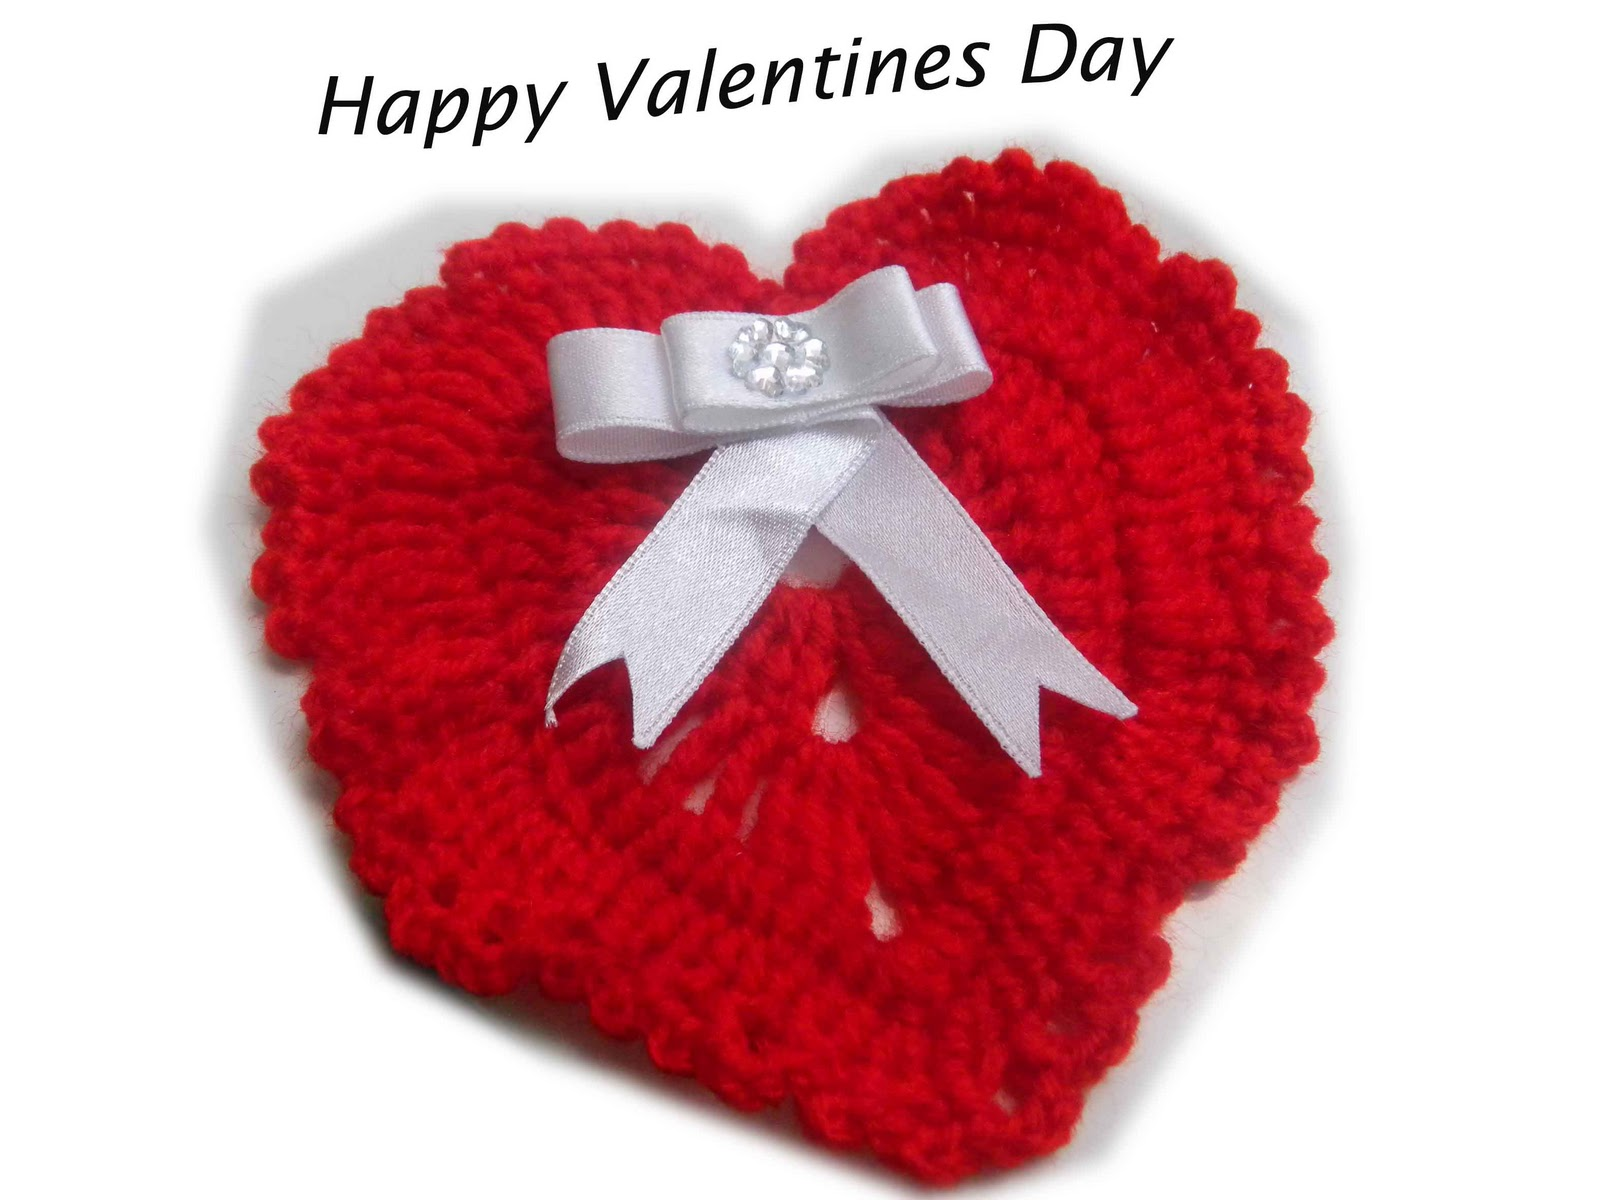 ... is a handmade crochet card for valentines day.....how is my atttempt